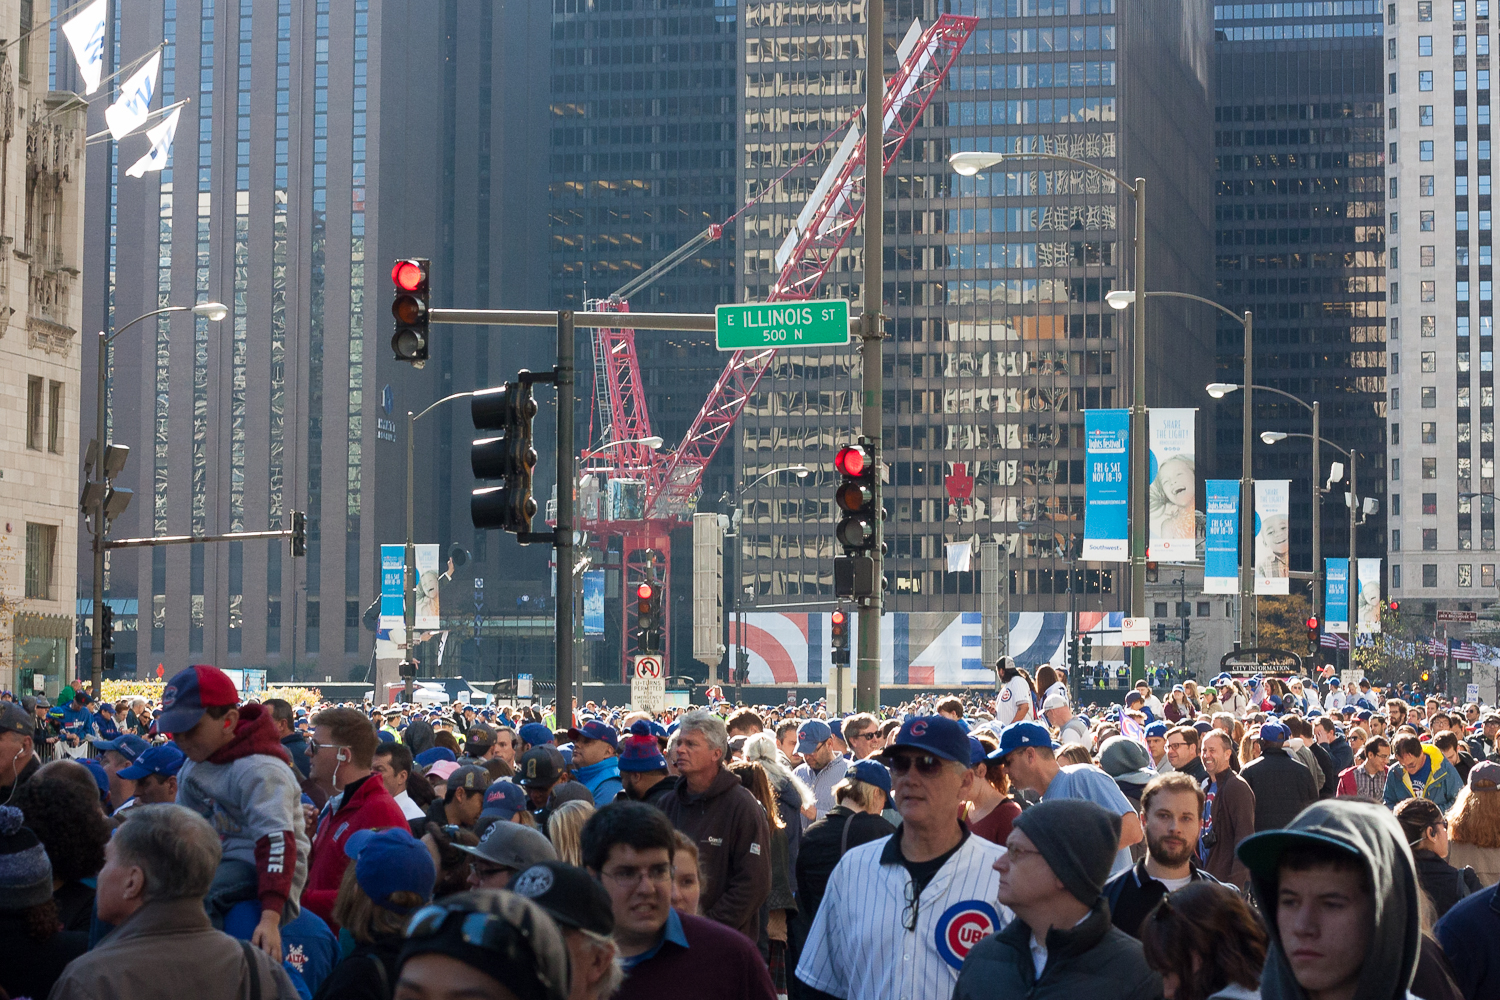 Cubs_Win_World_Series_Laura_Suprenant_Photography-8.jpg